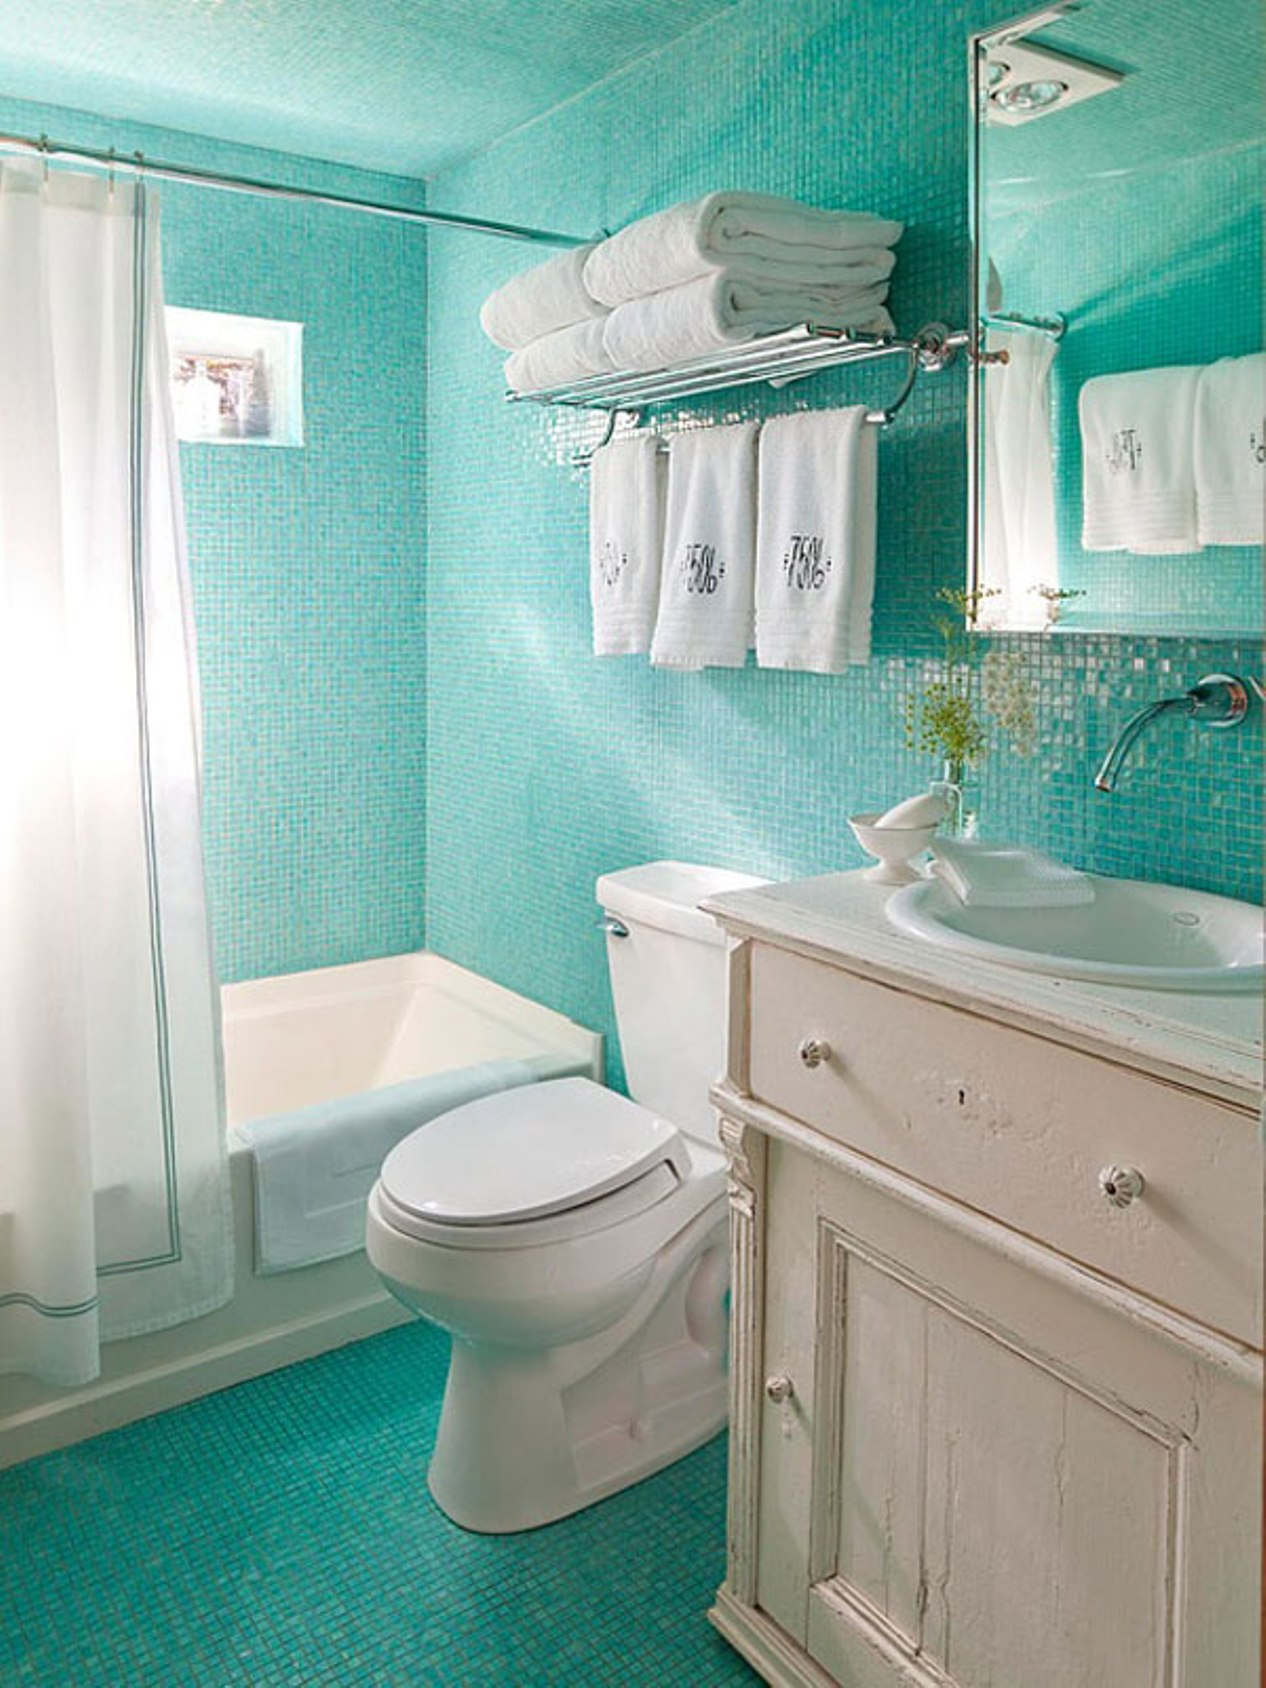 Blue Bathroom Ideas Small Bathroom With Blue Wall Tiles Asnd Mozaik Blue And White Tub